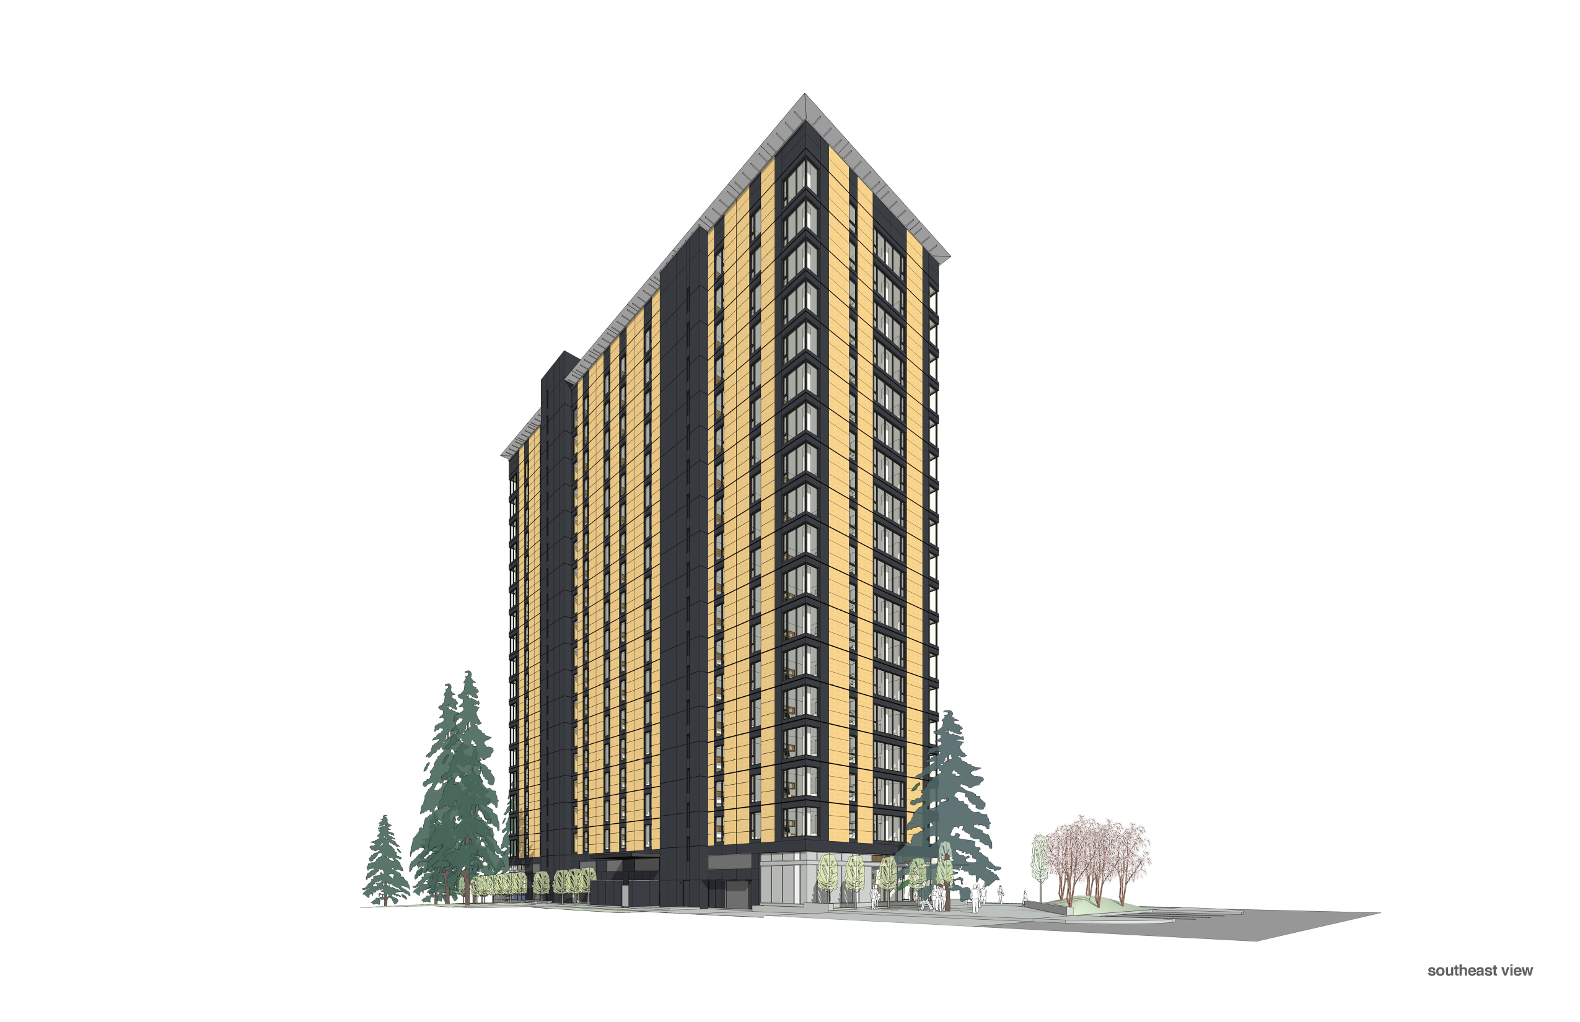 Construction of world's tallest timber building is underway in Vancouver